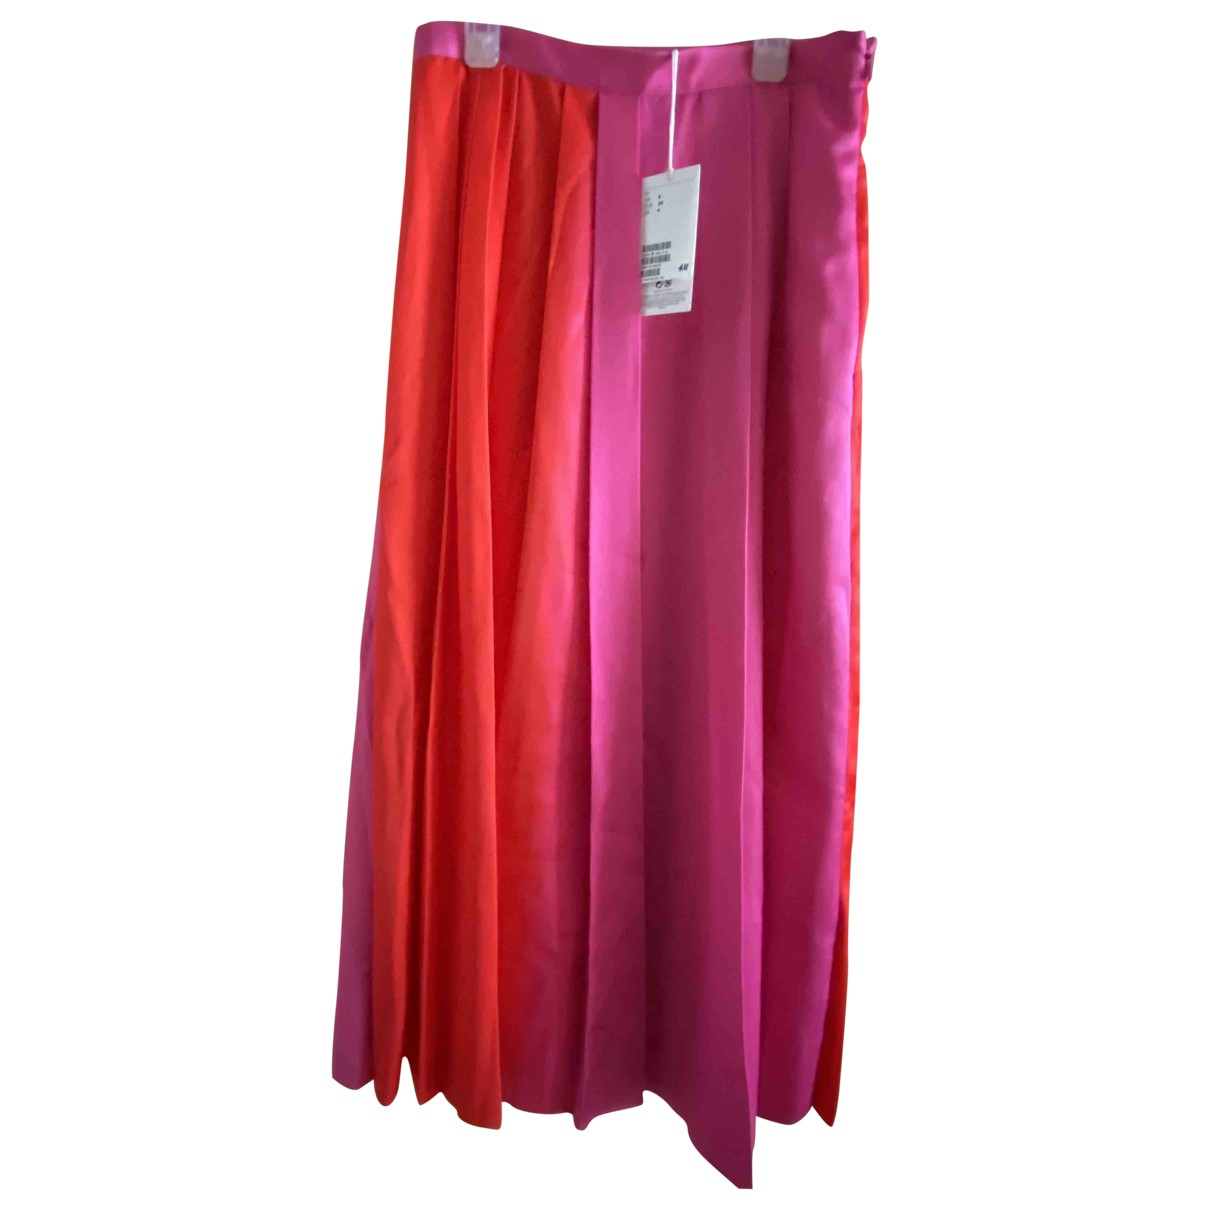 H&m Studio \N Pink skirt for Women 8 UK